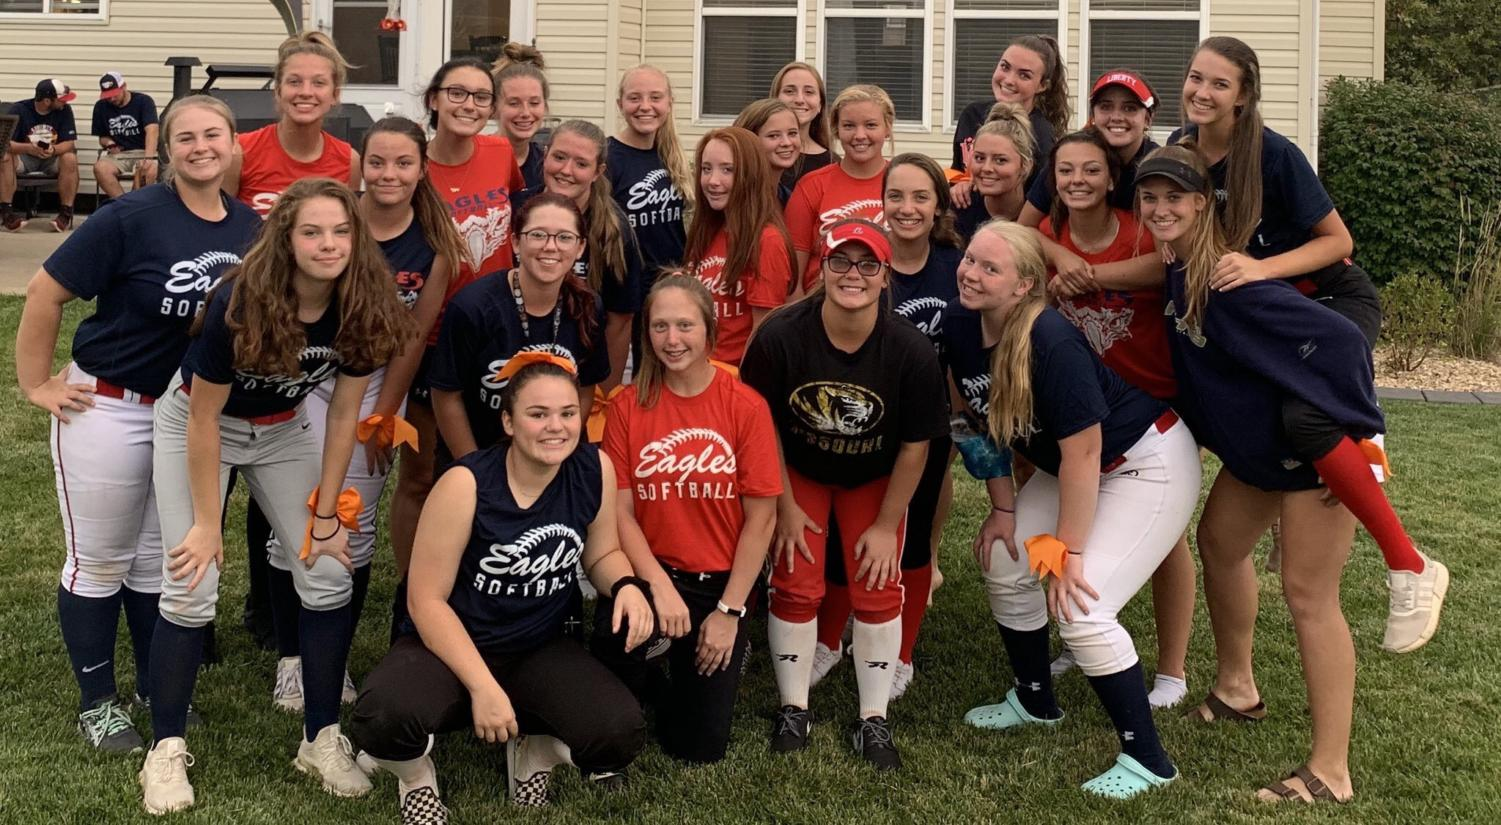 Varsity and Jv come together in a team bonding experience for dinner at a teammates house the night before everyone's first game.